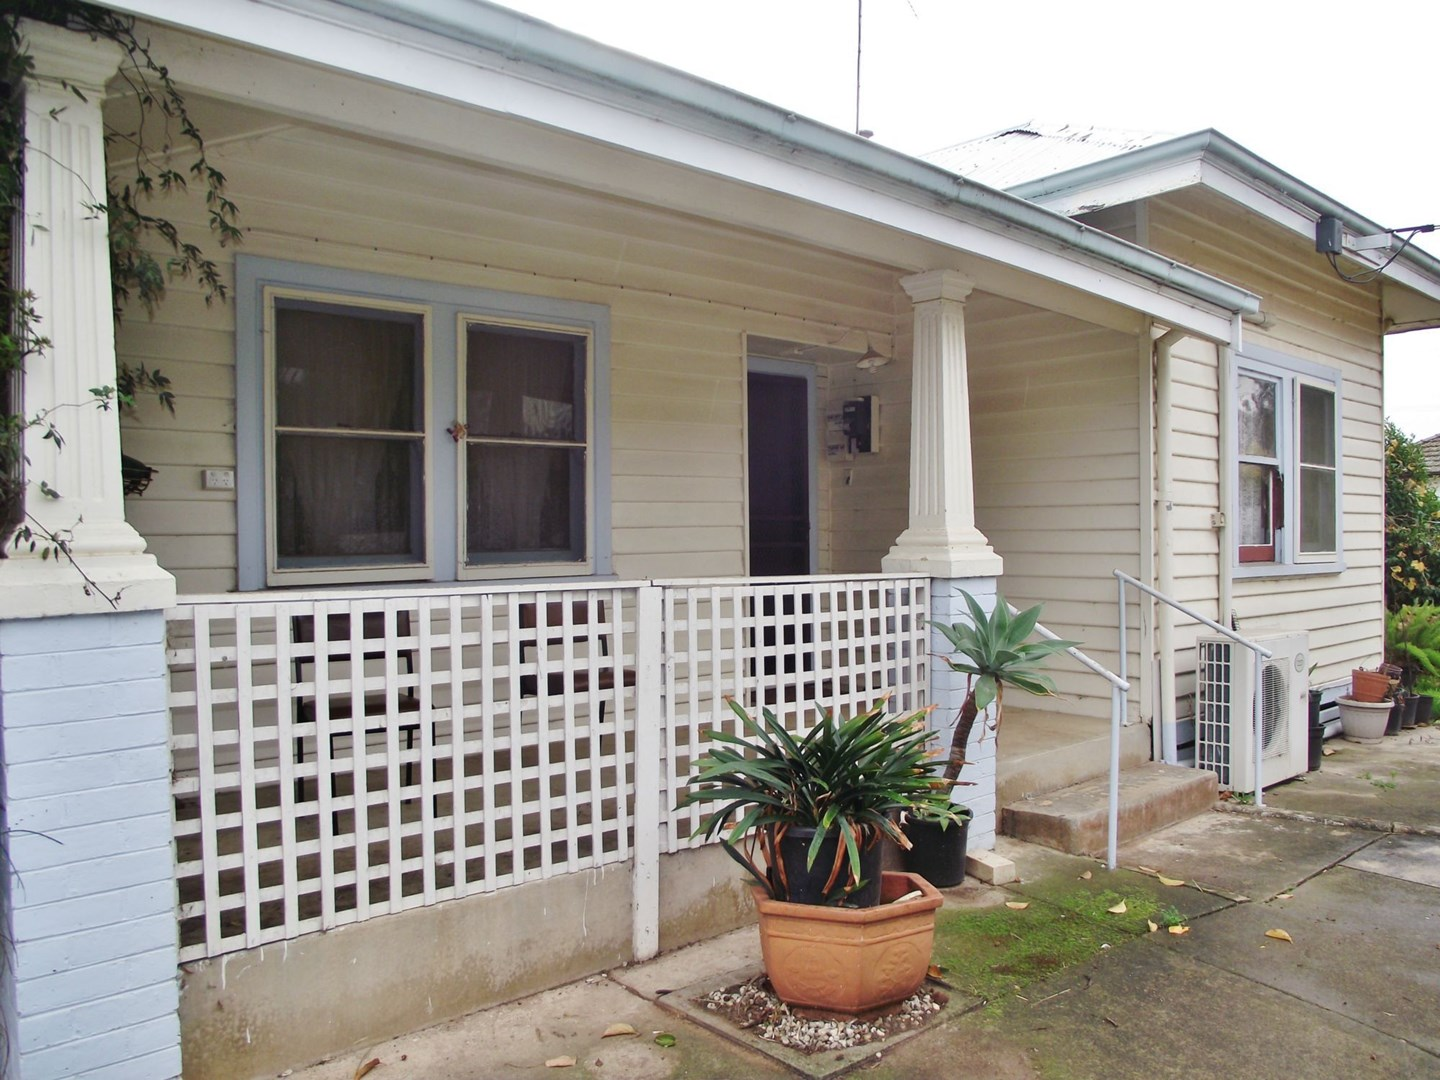 Reduced for quick sale! $185,000 (under offer)